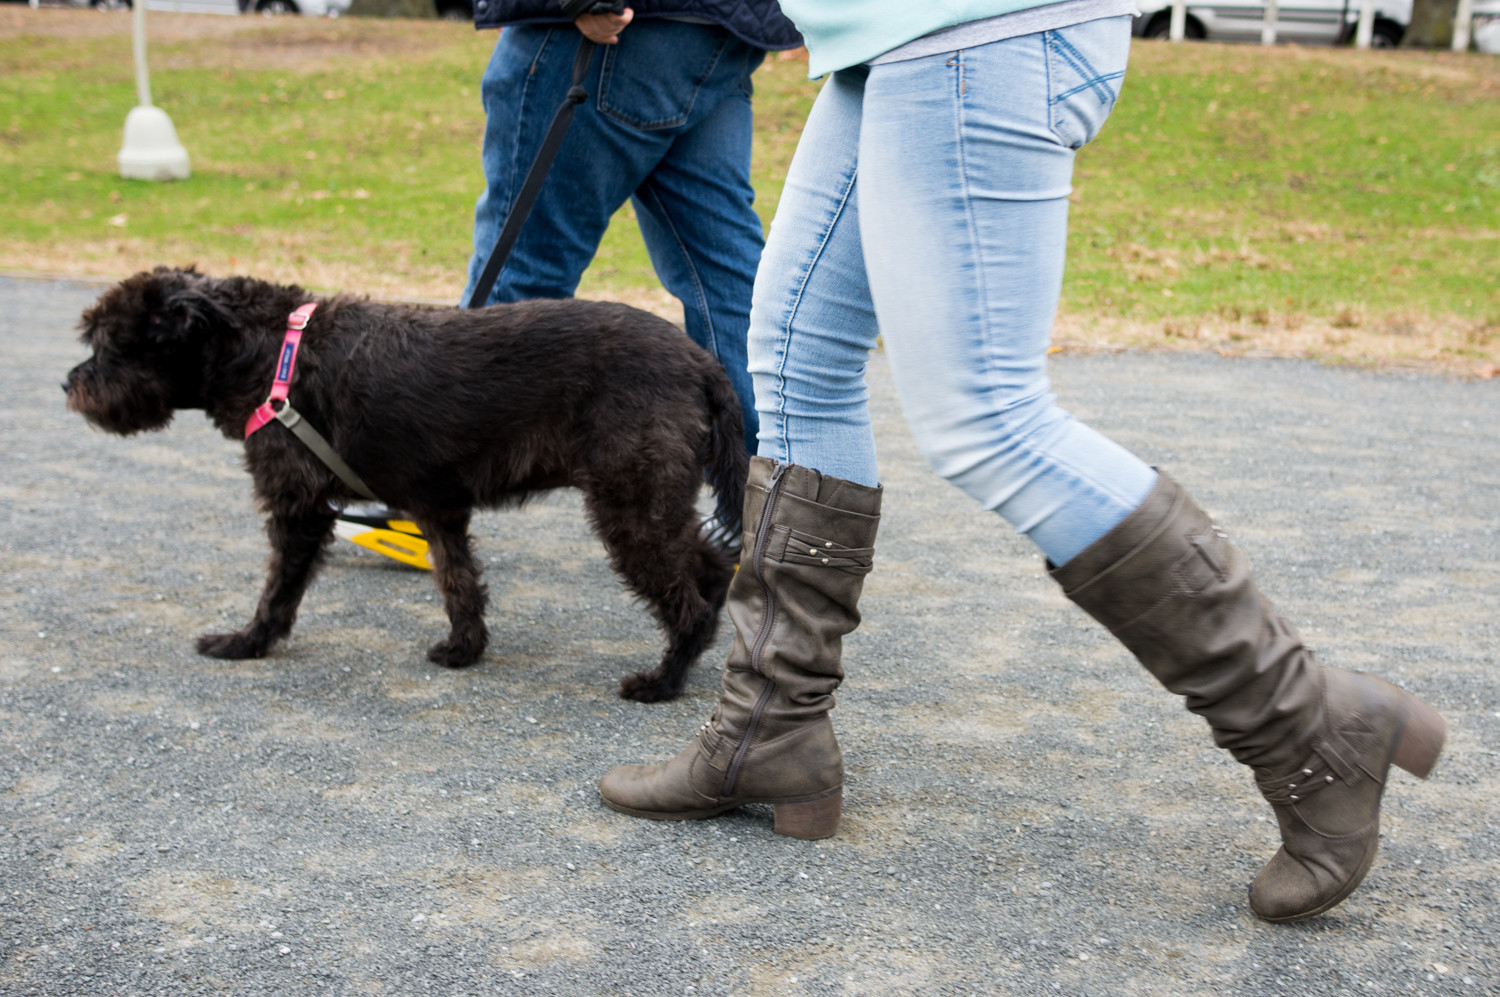 Pumkin Paws focuses on walking no more than two or three dogs at a time, which provides a better experience for the dog. They wanted to differentiate themselves from those walk 10 to 15 dogs at a time.